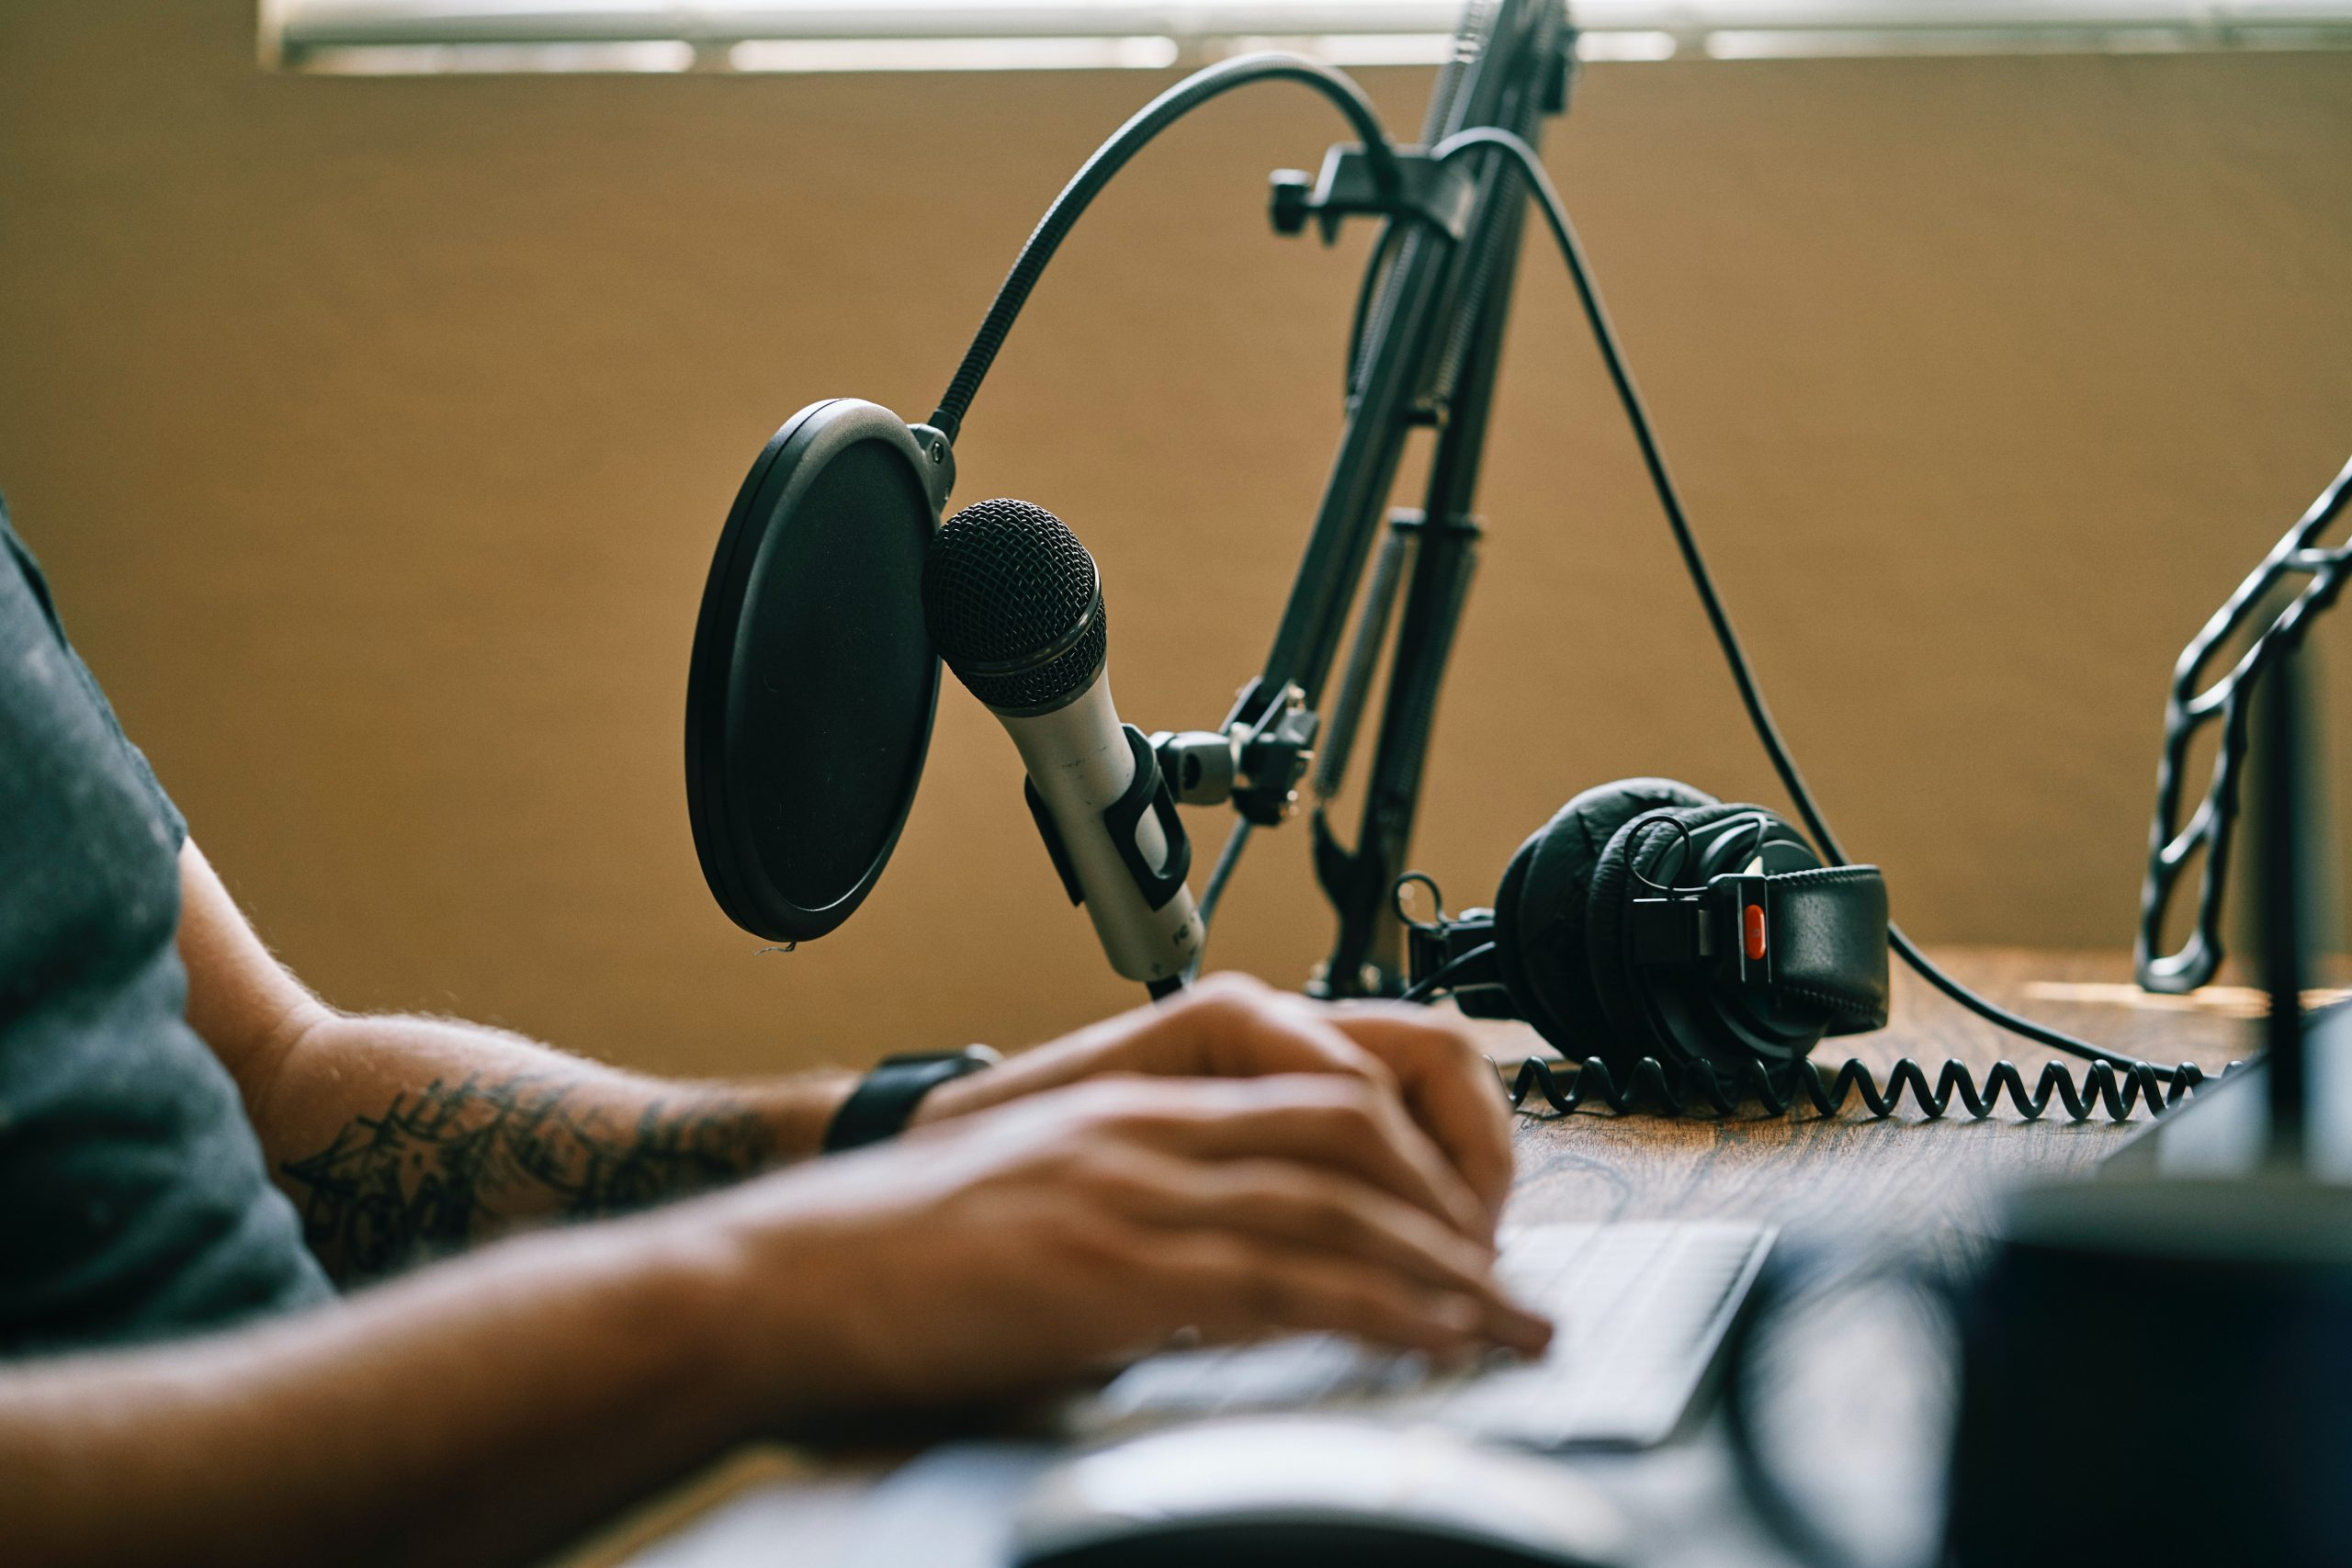 man doing work on a table with his microphone and paper